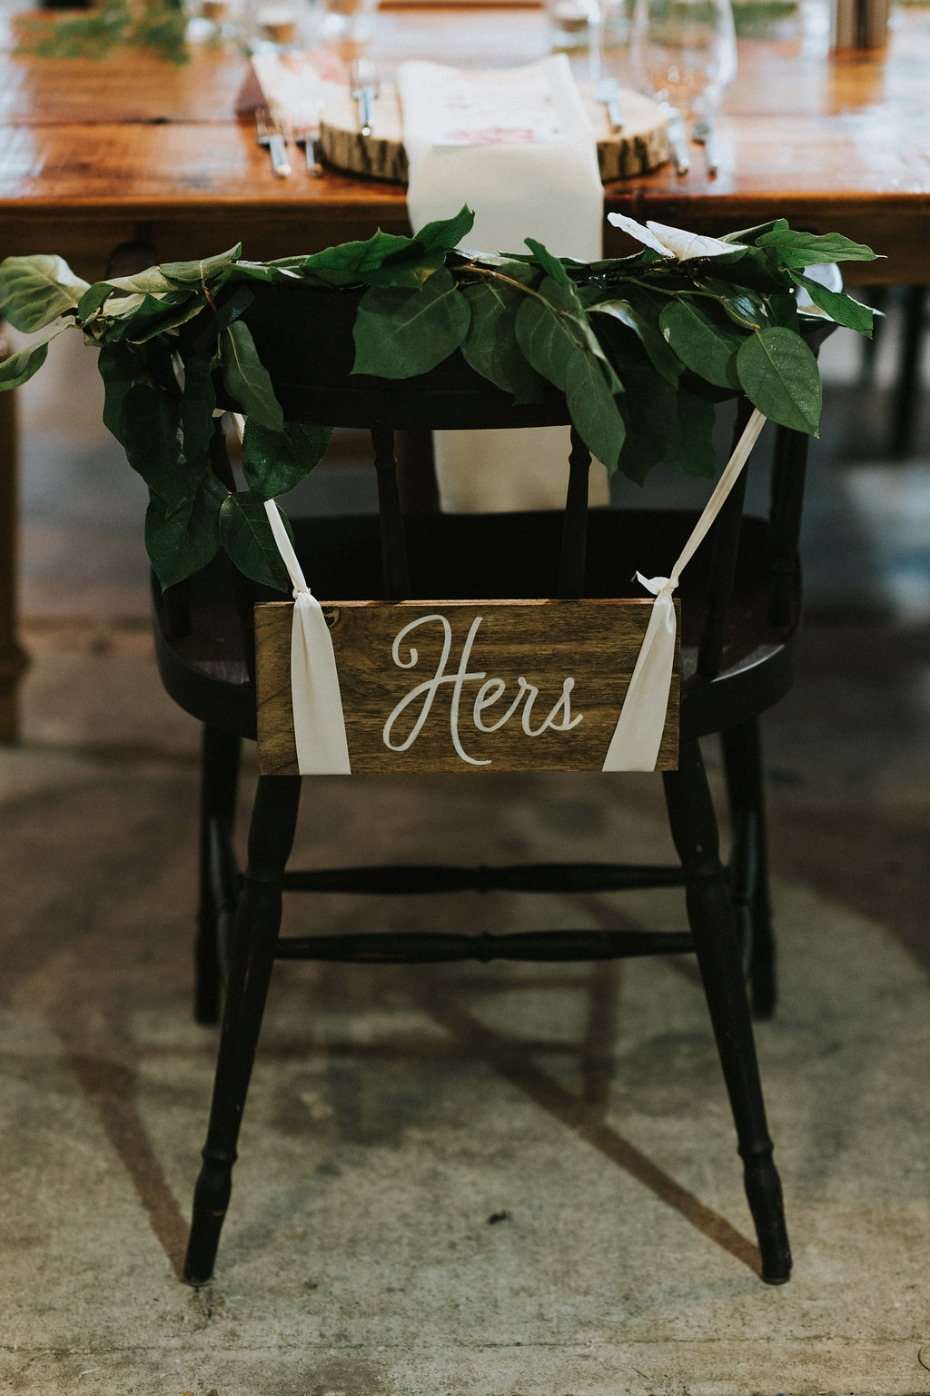 hers wedding seat sign